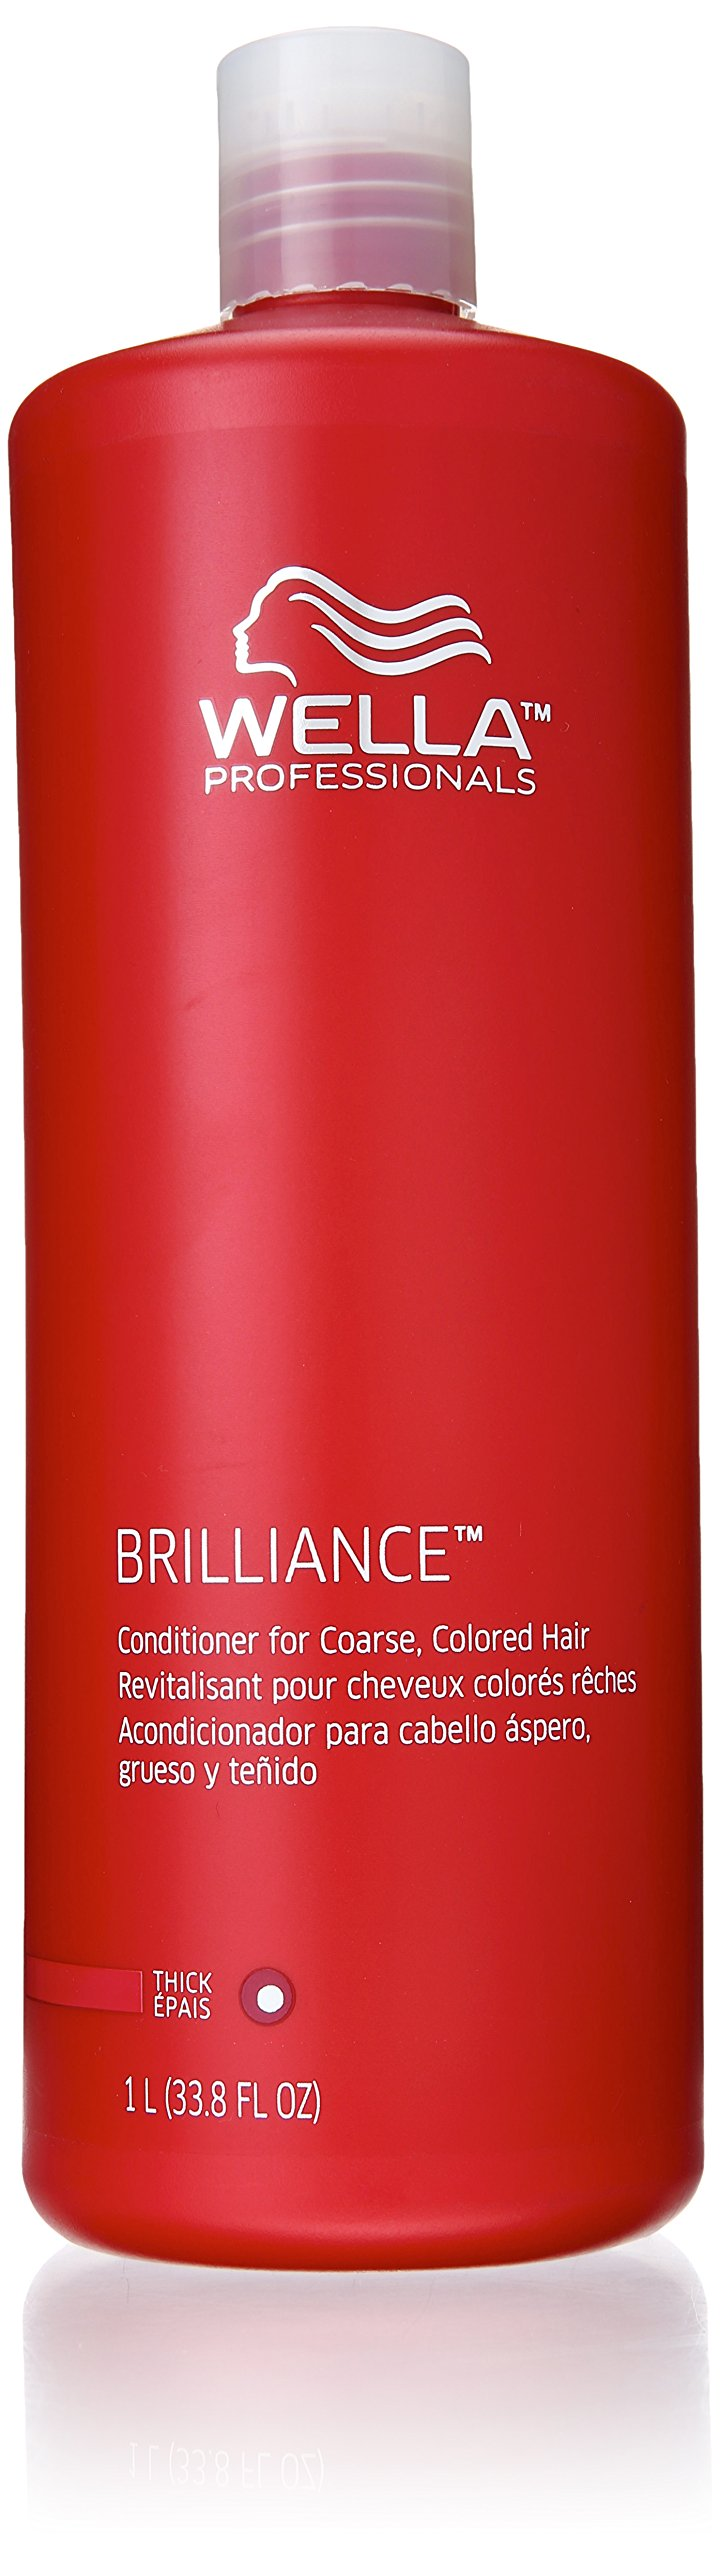 Wella Brilliance Conditioner for Coarse, Coloured Hair, 1000ml, 1000ml